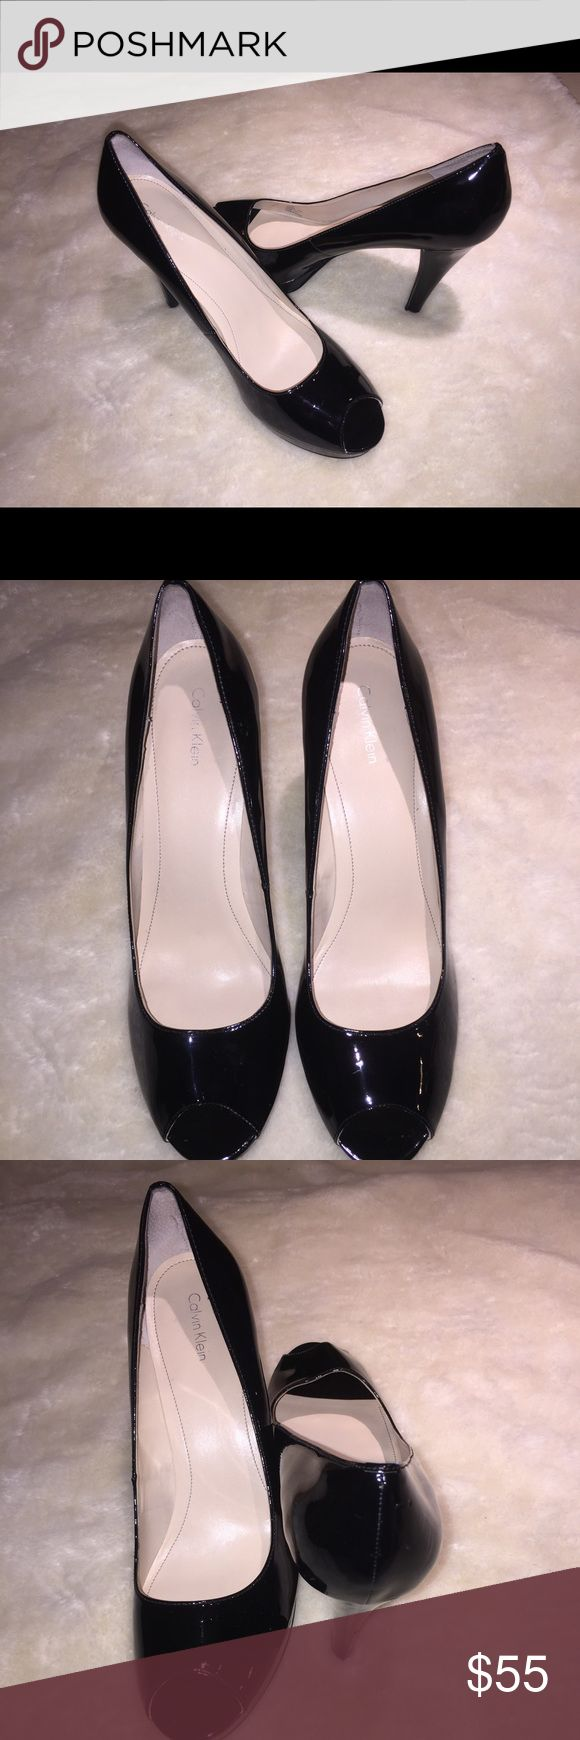 "Calvin Klein Black Patent Leather High Heel Pumps Woman's Black Patent Leather Shoes  Size 11 Peep Toe Style  Heel Height is Aprox 4 1/2""  These are in Very Good Condition. They have only been worn a handful of times . Calvin Klein Shoes Heels"